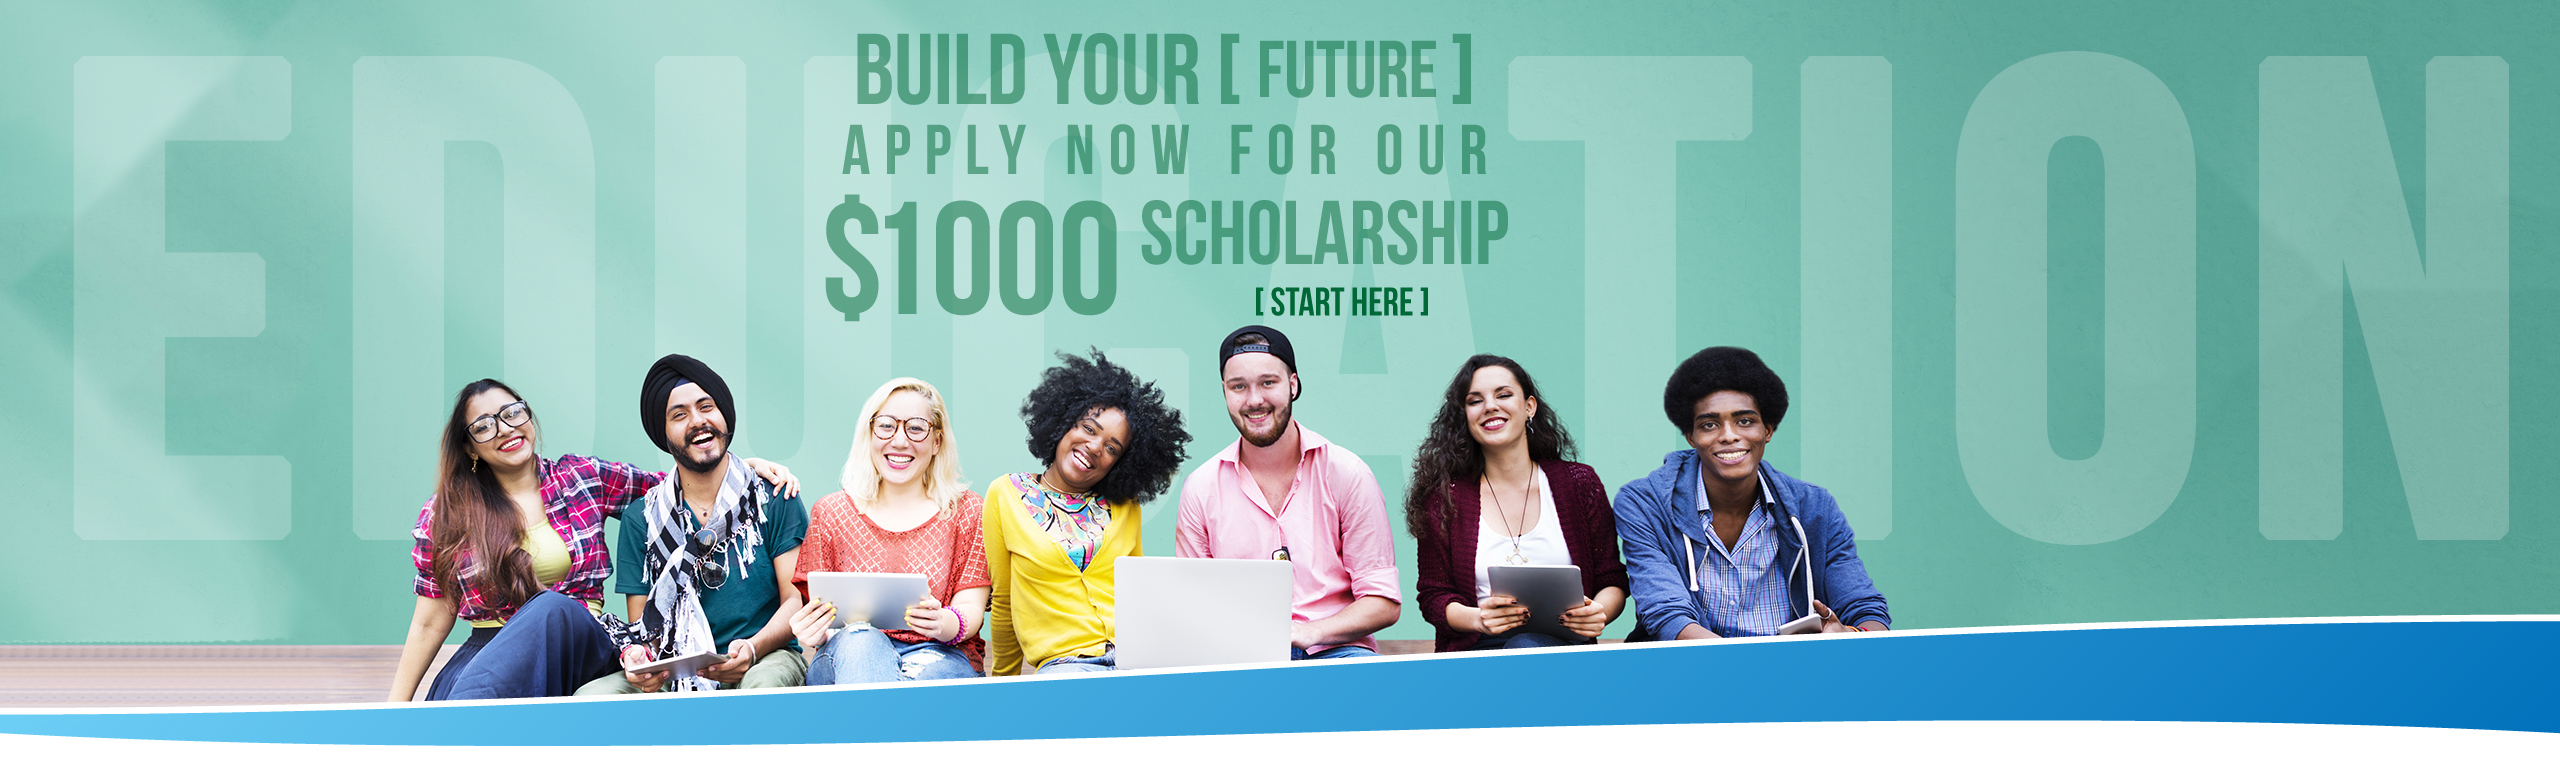 Build Your Future. Apply Now for Our $1000 Scholarship. Start Here.